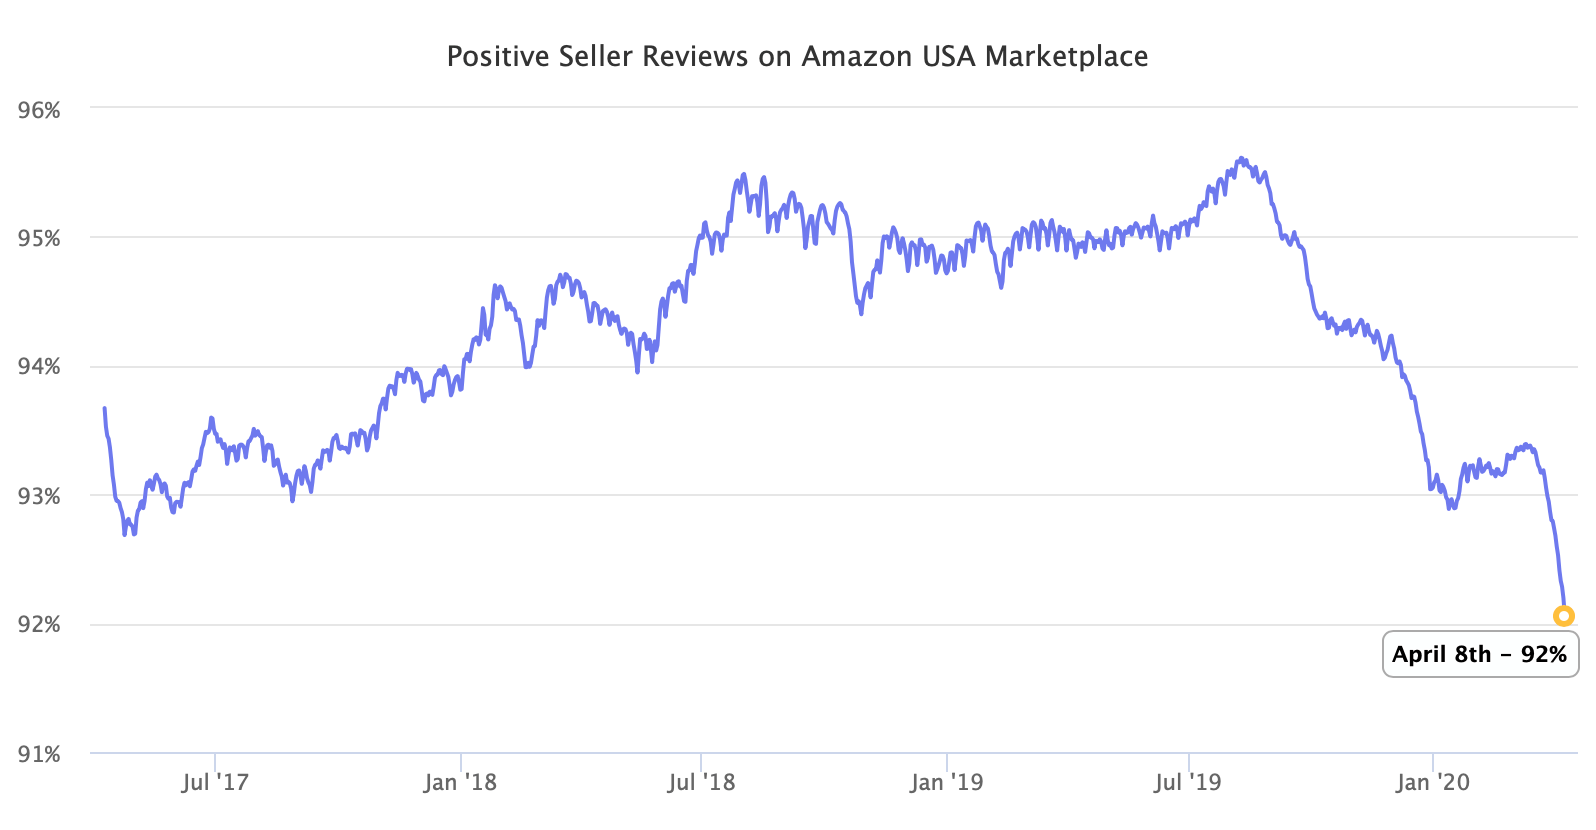 Positive Seller Reviews on Amazon USA Marketplace